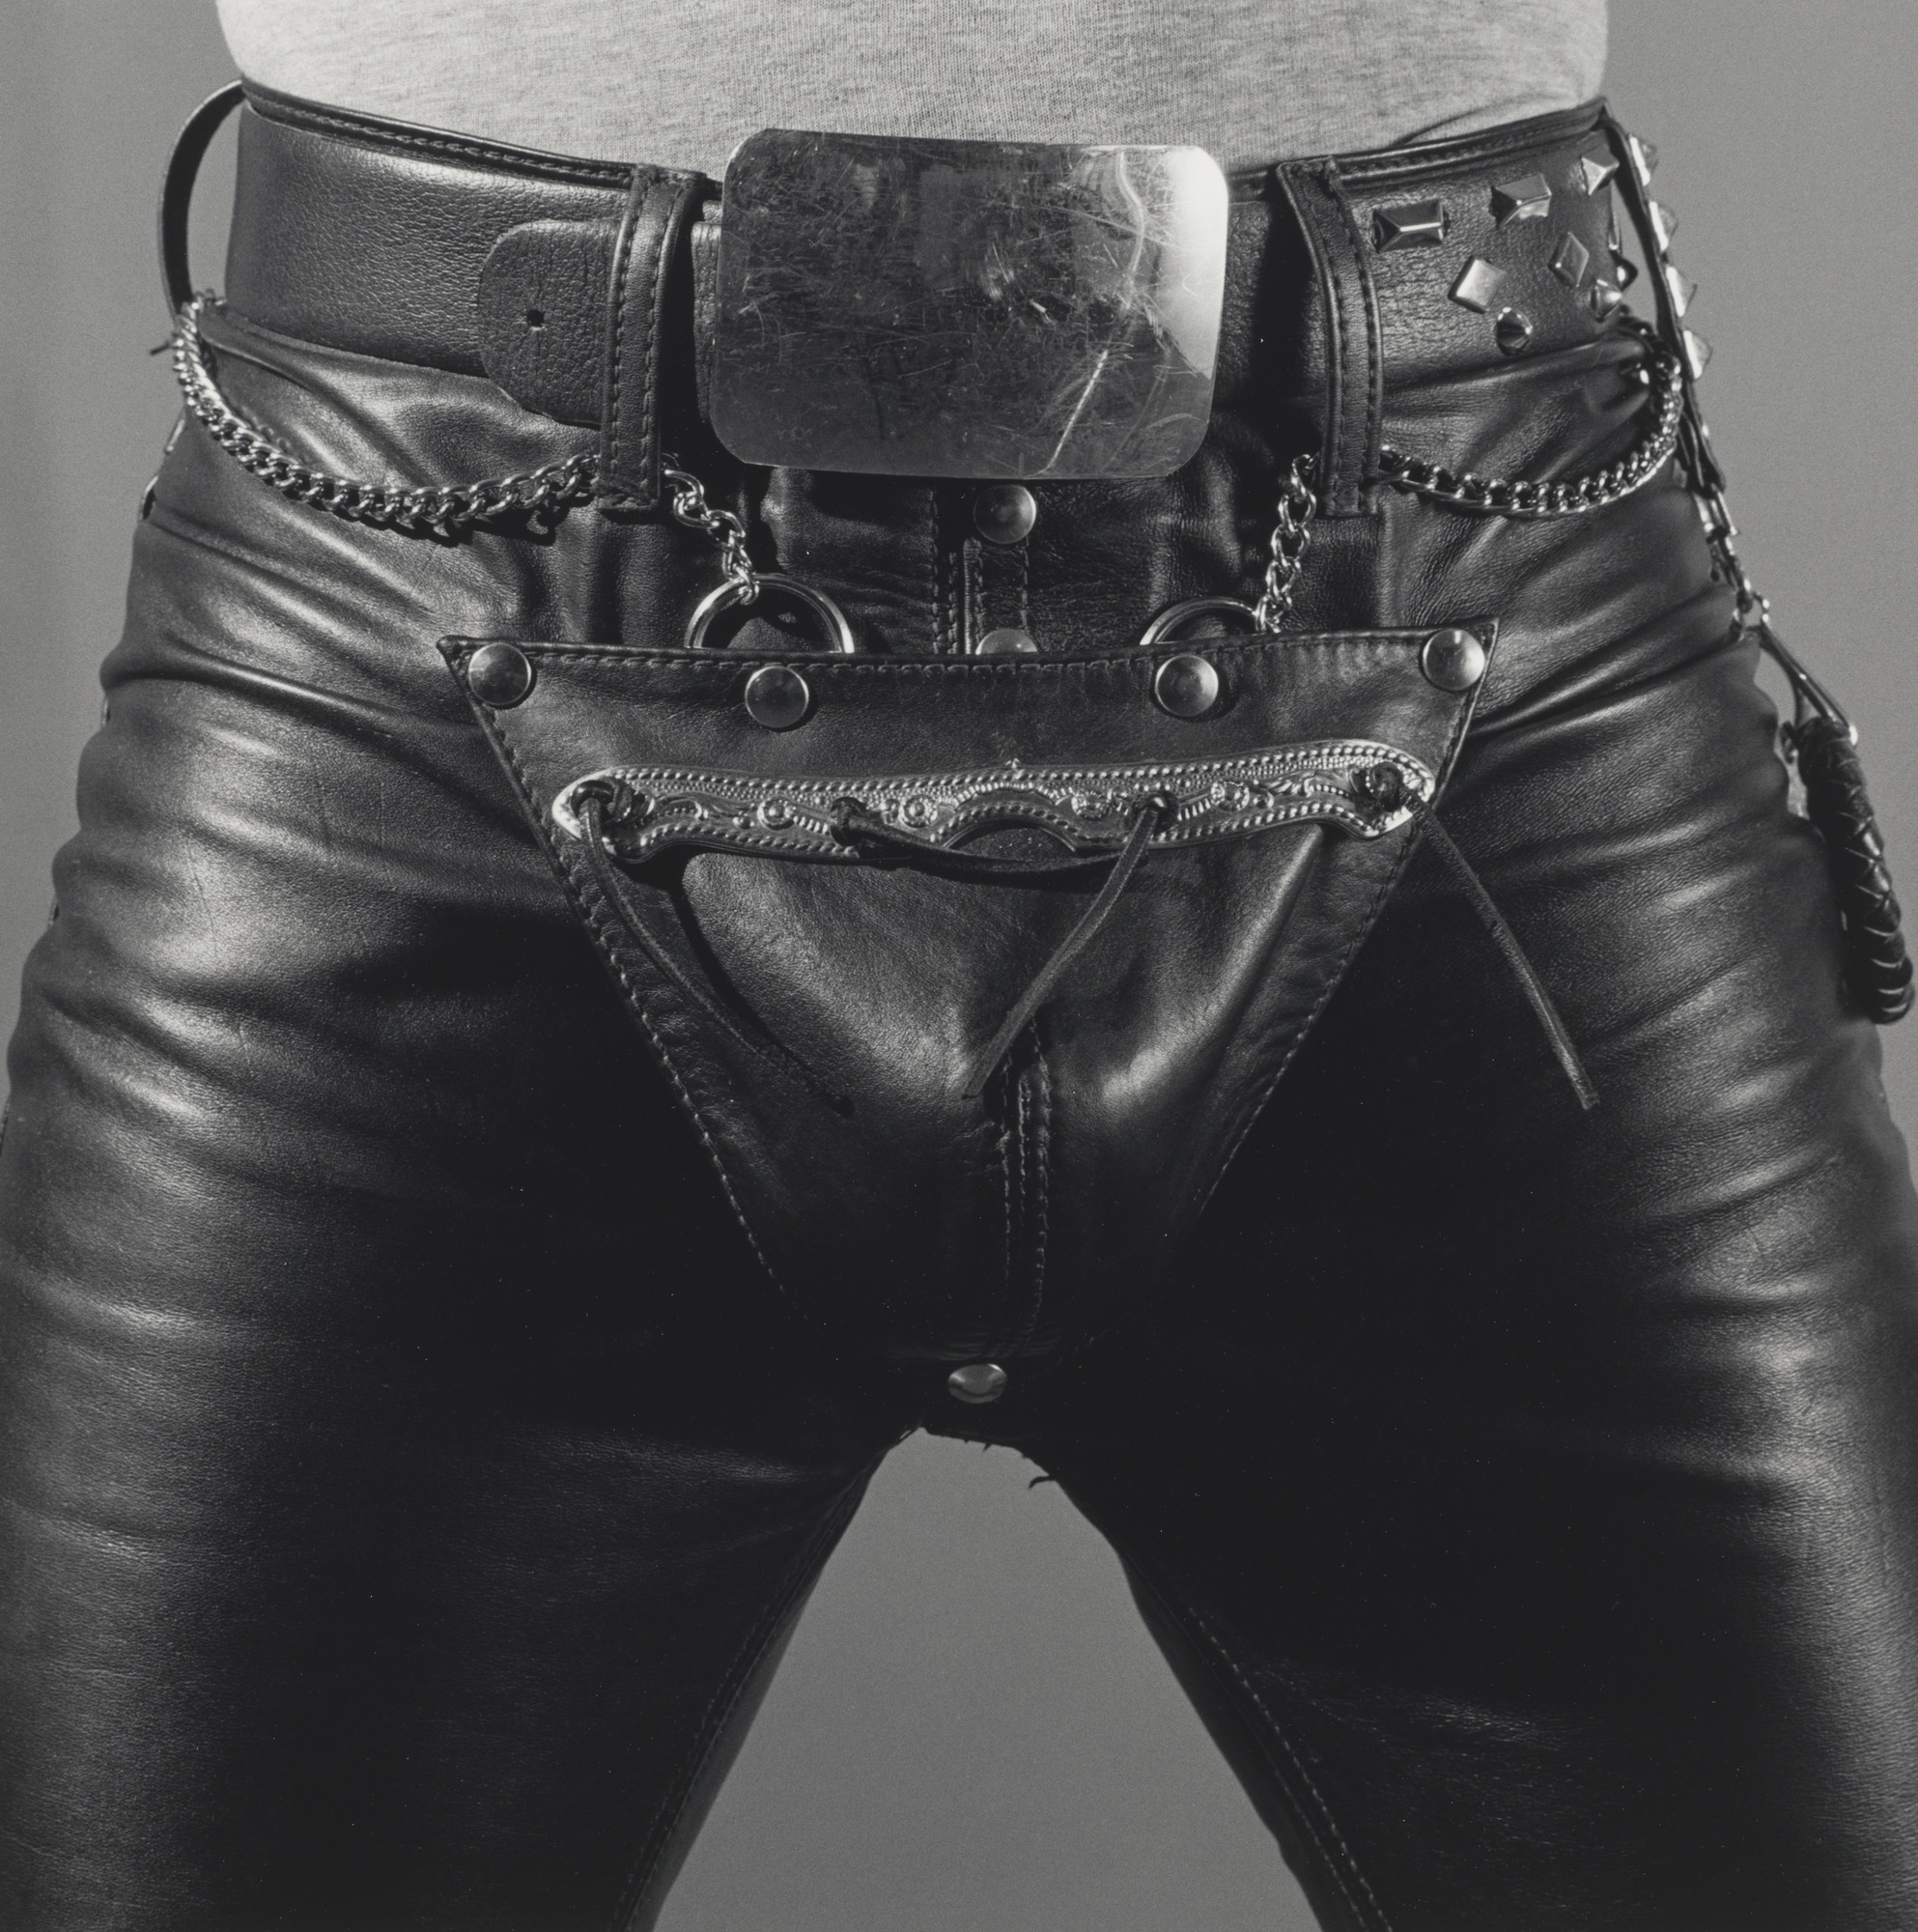 Robert Mapplethorpe. Leather Crotch. 1980